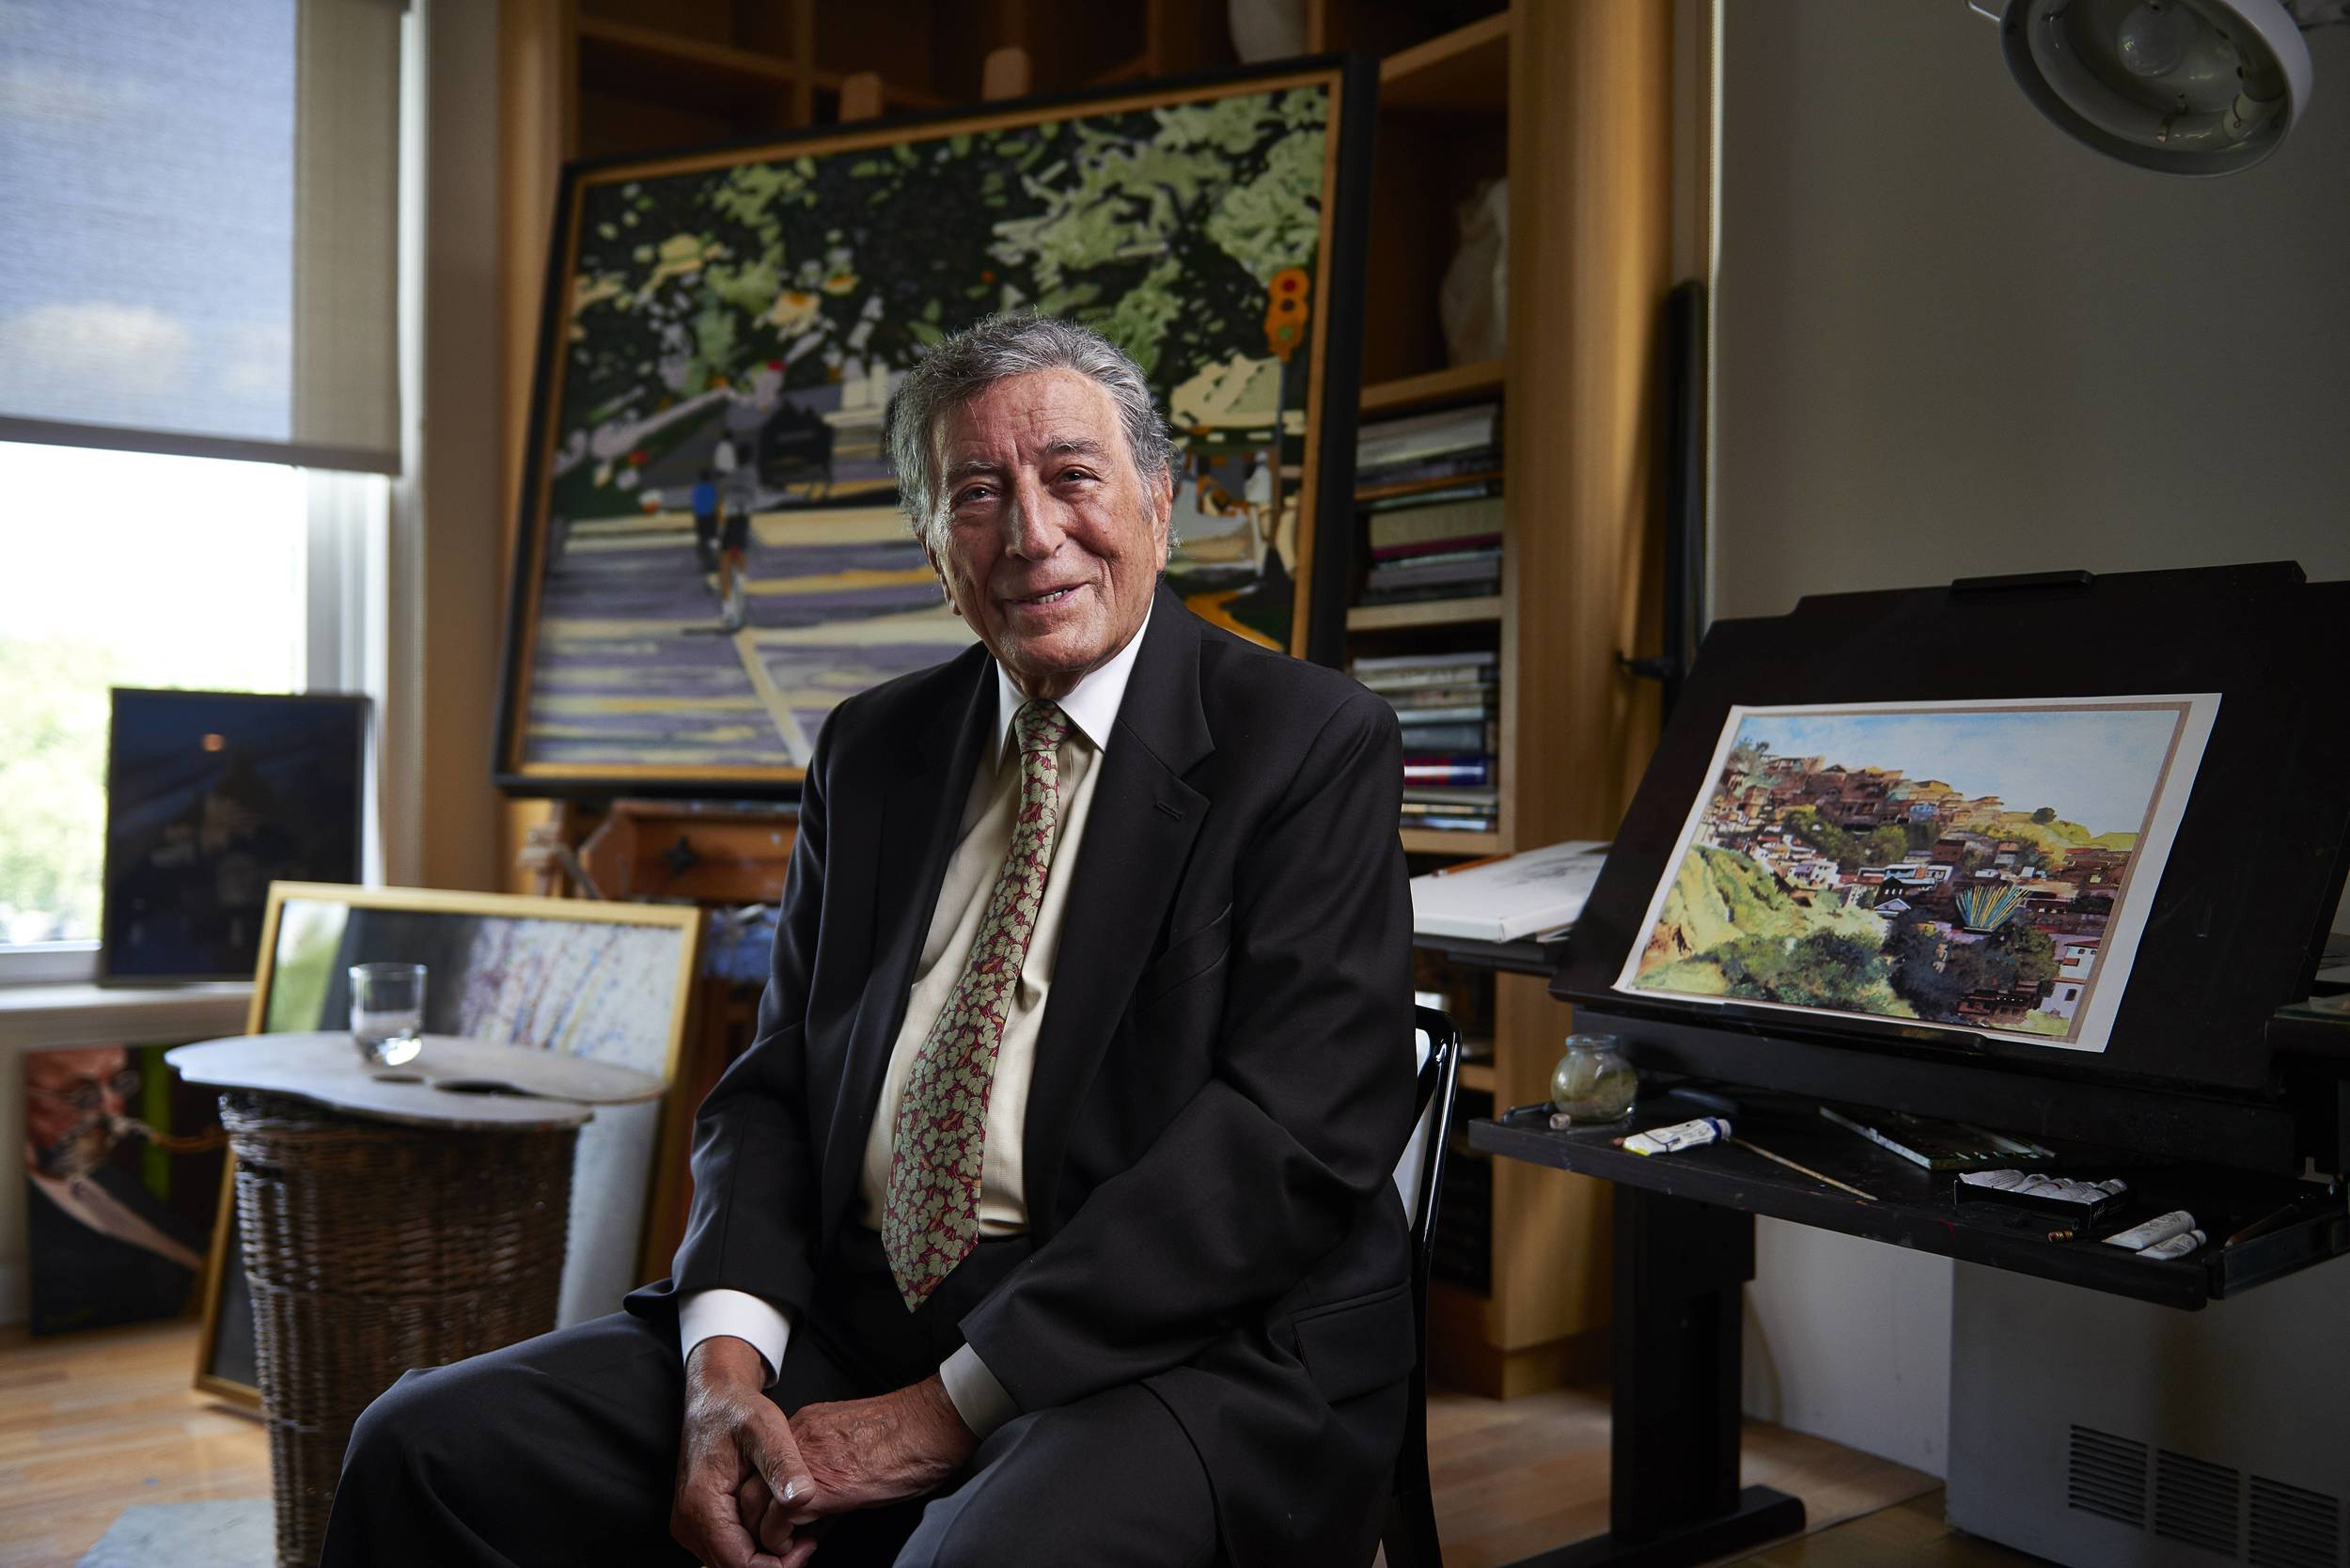 Portrait of singer Tony Bennett in his art studio on Monday, July 20, 2015 in New York, N.Y. Bennett has been a painter for decades, and his artworks have been exhibited widely.